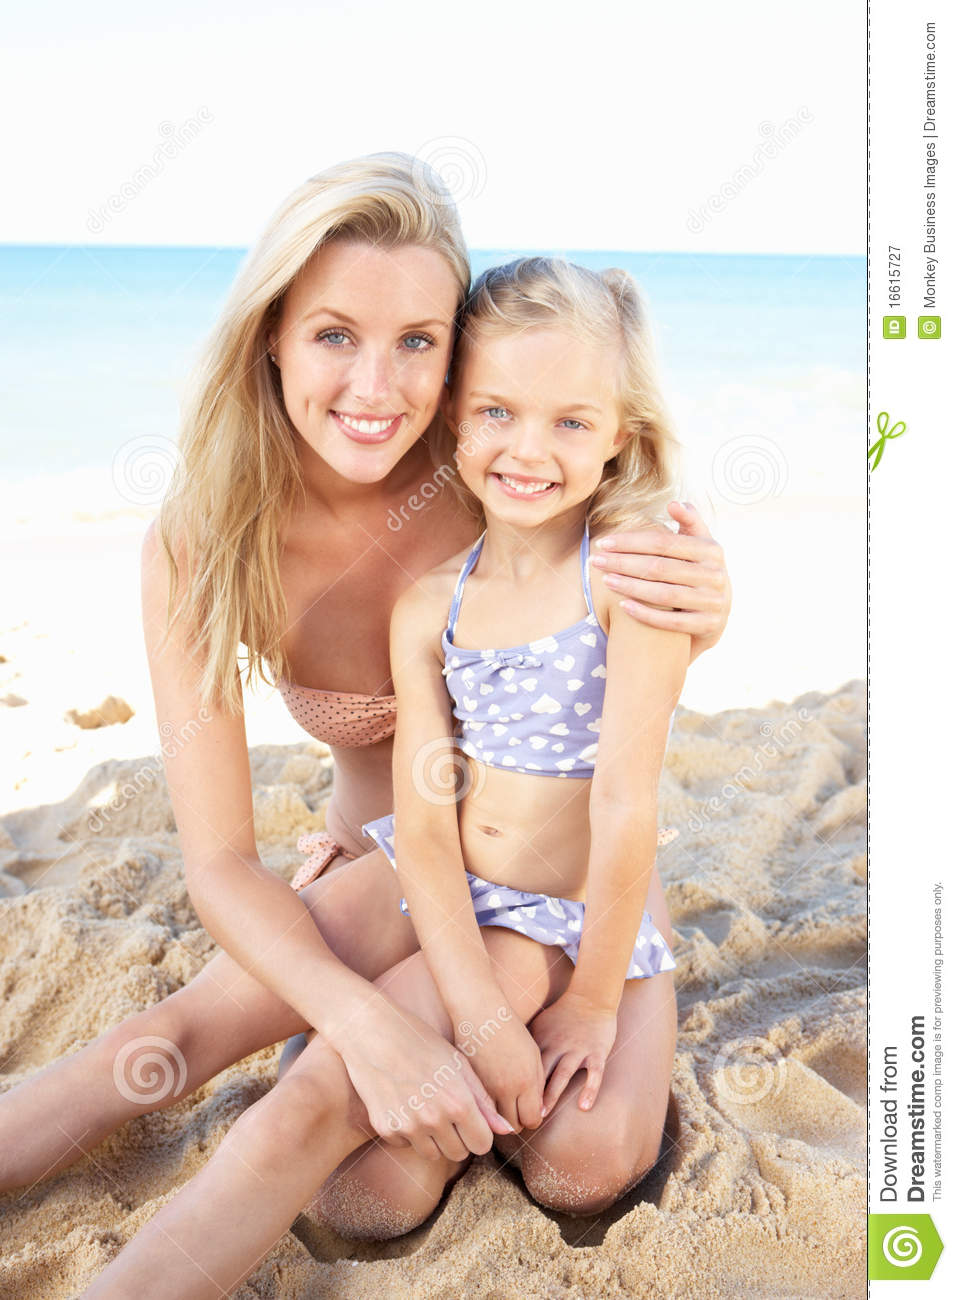 Mom and daughter porn download